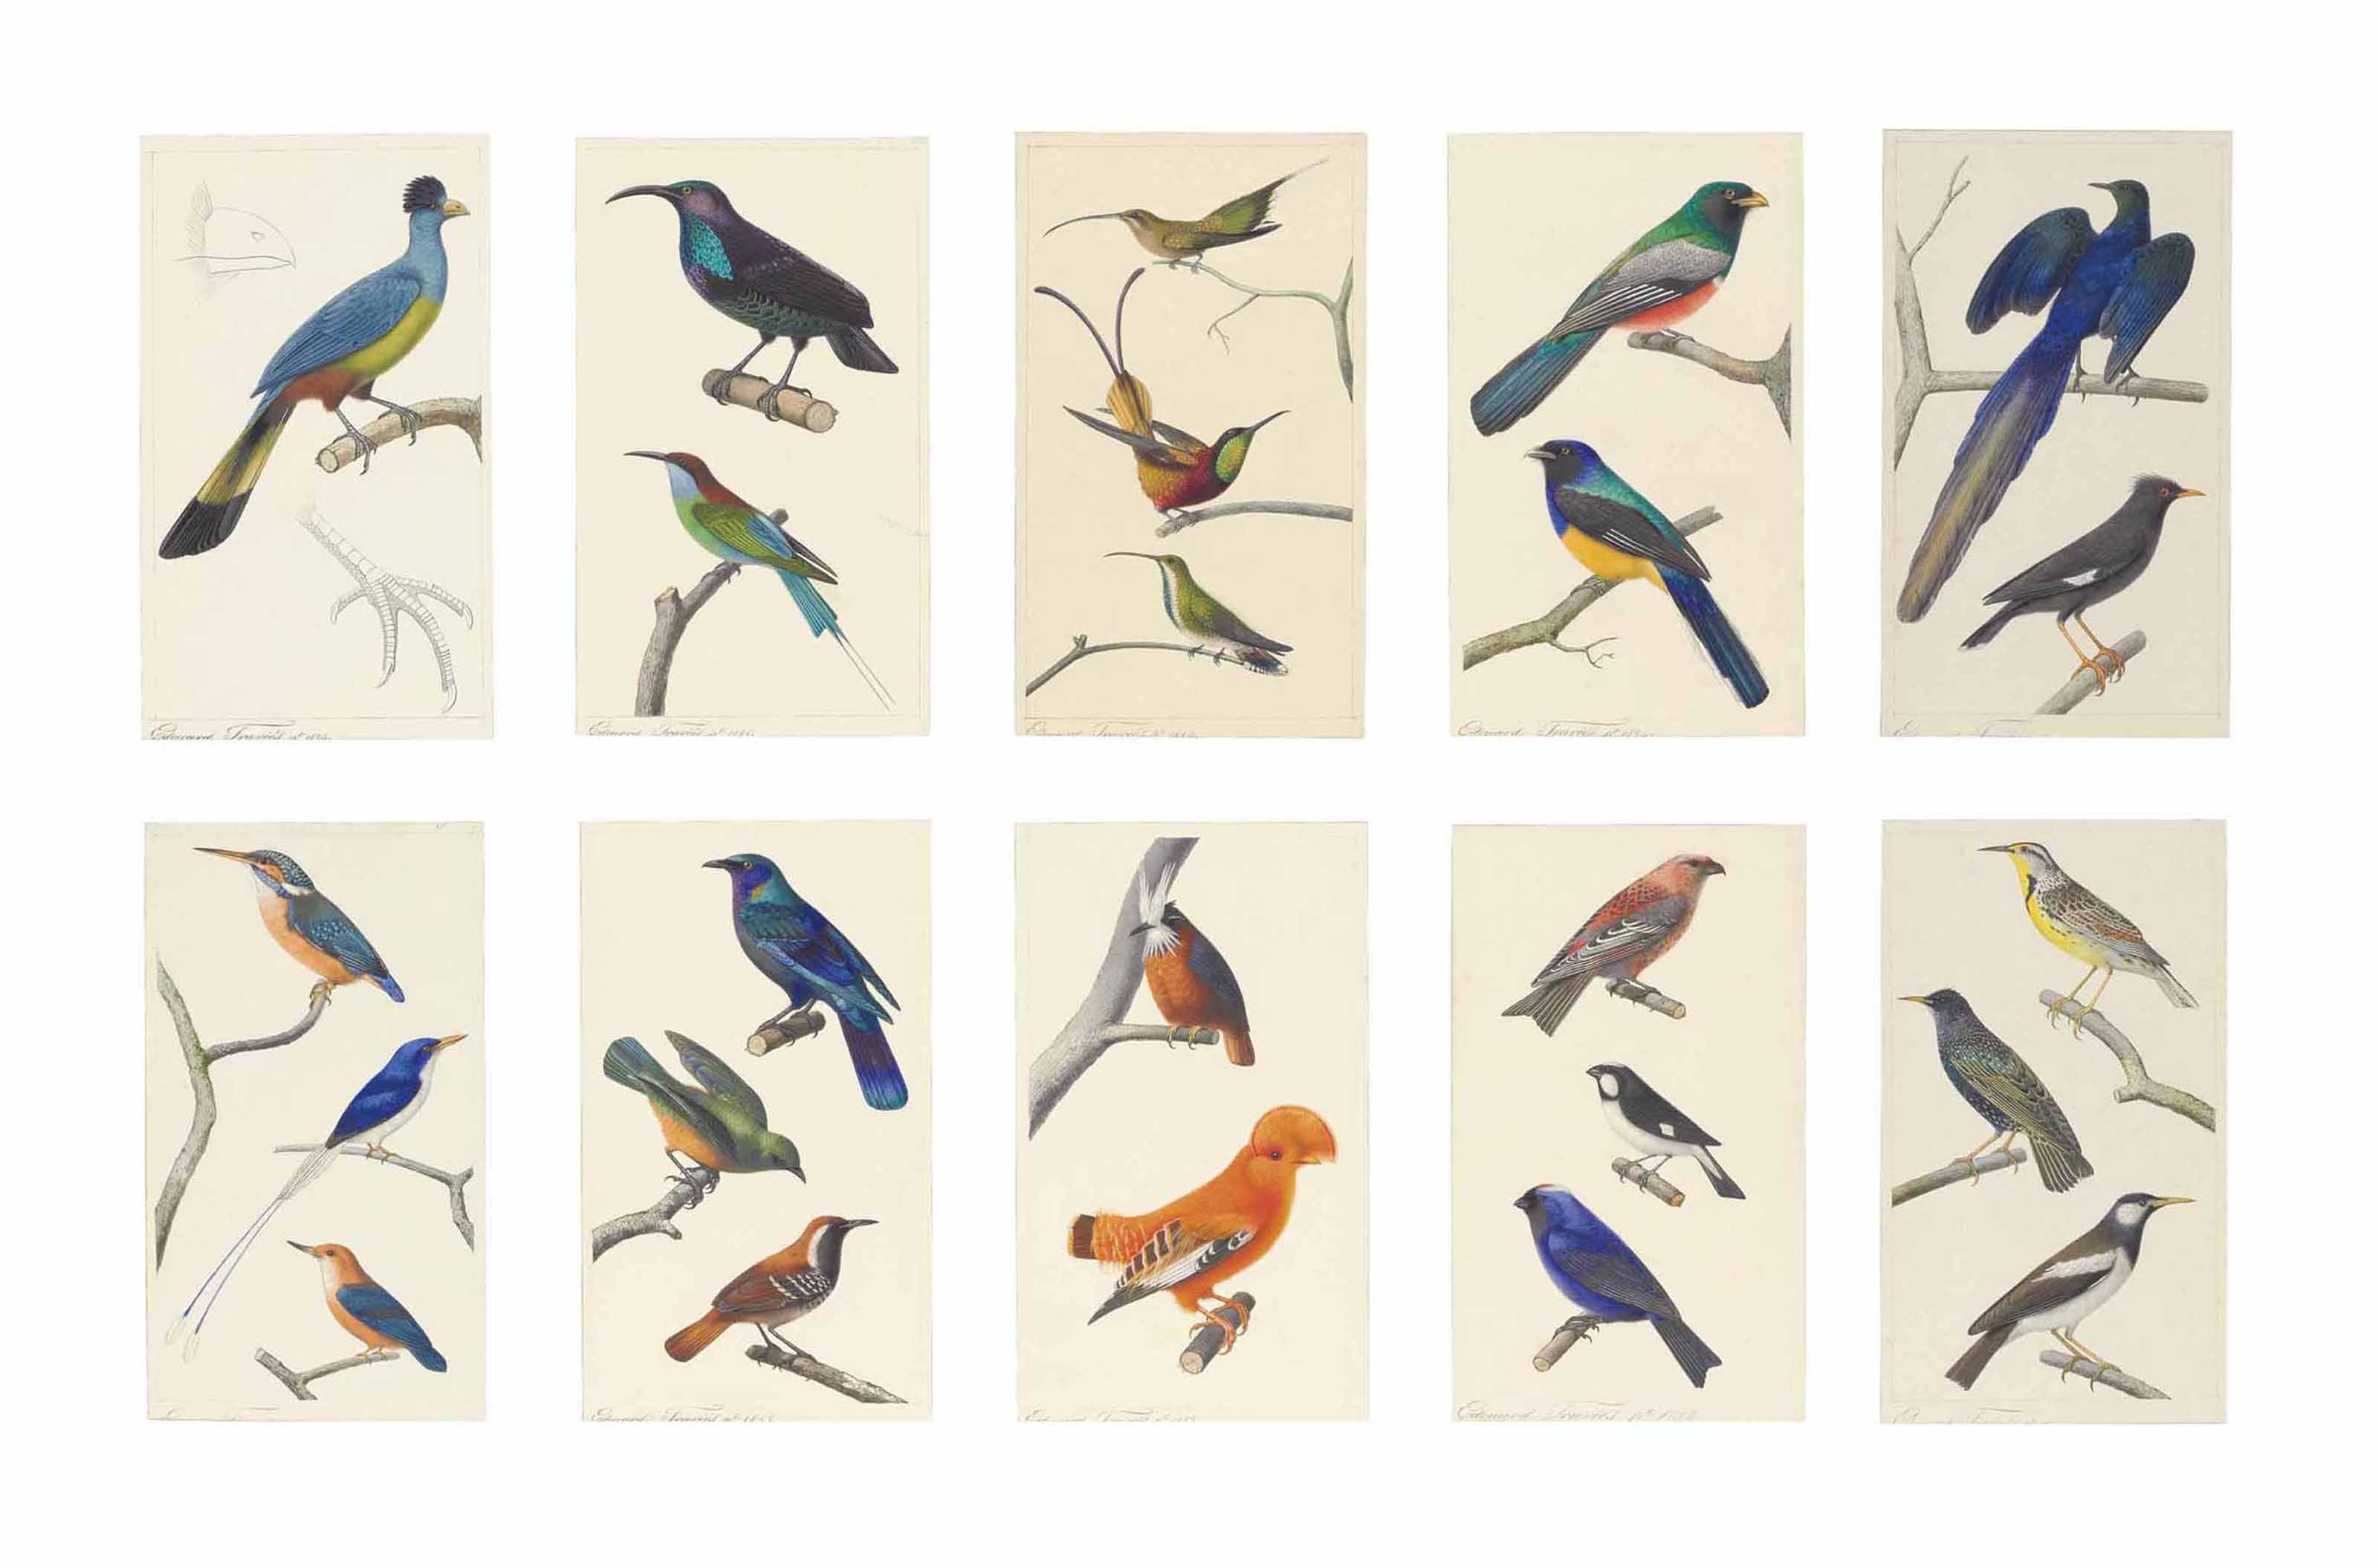 Studies of birds: Great blue tauraco; Paradise riflebird and Blue-throated bee eater; Long-tailed hummingbird, Crimson topaz hummingbird, and Green-throated mango hummingbird; Collared trogon and White-tailed trogon; Long-tailed glossy starling and Common mynah; Common kingfisher, Common paradise kingfisher, and Yellow-billed kingfisher; Purple glossy starling, Thrush, and Antwren; White plume antbird and Cock of the rock; Pine grosbeak, Lined seedeater, and Diademed tanager; and Eastern meadow lark, Starling, and Pied starling